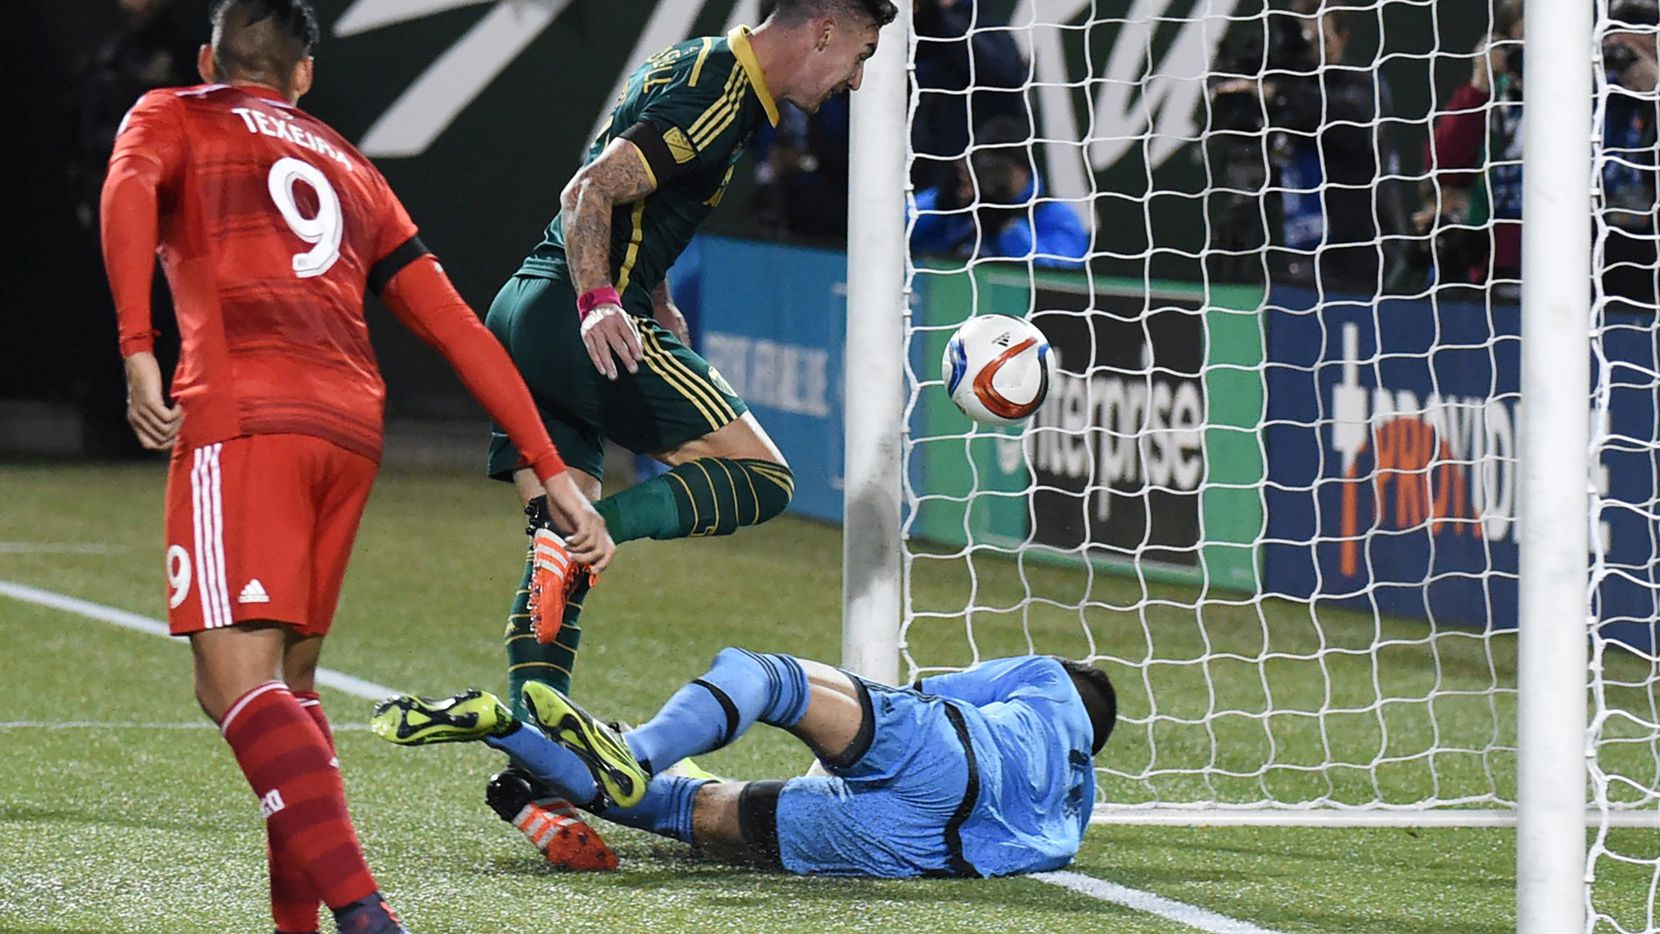 Portland ganó 3-1 a Dallas el domingo.